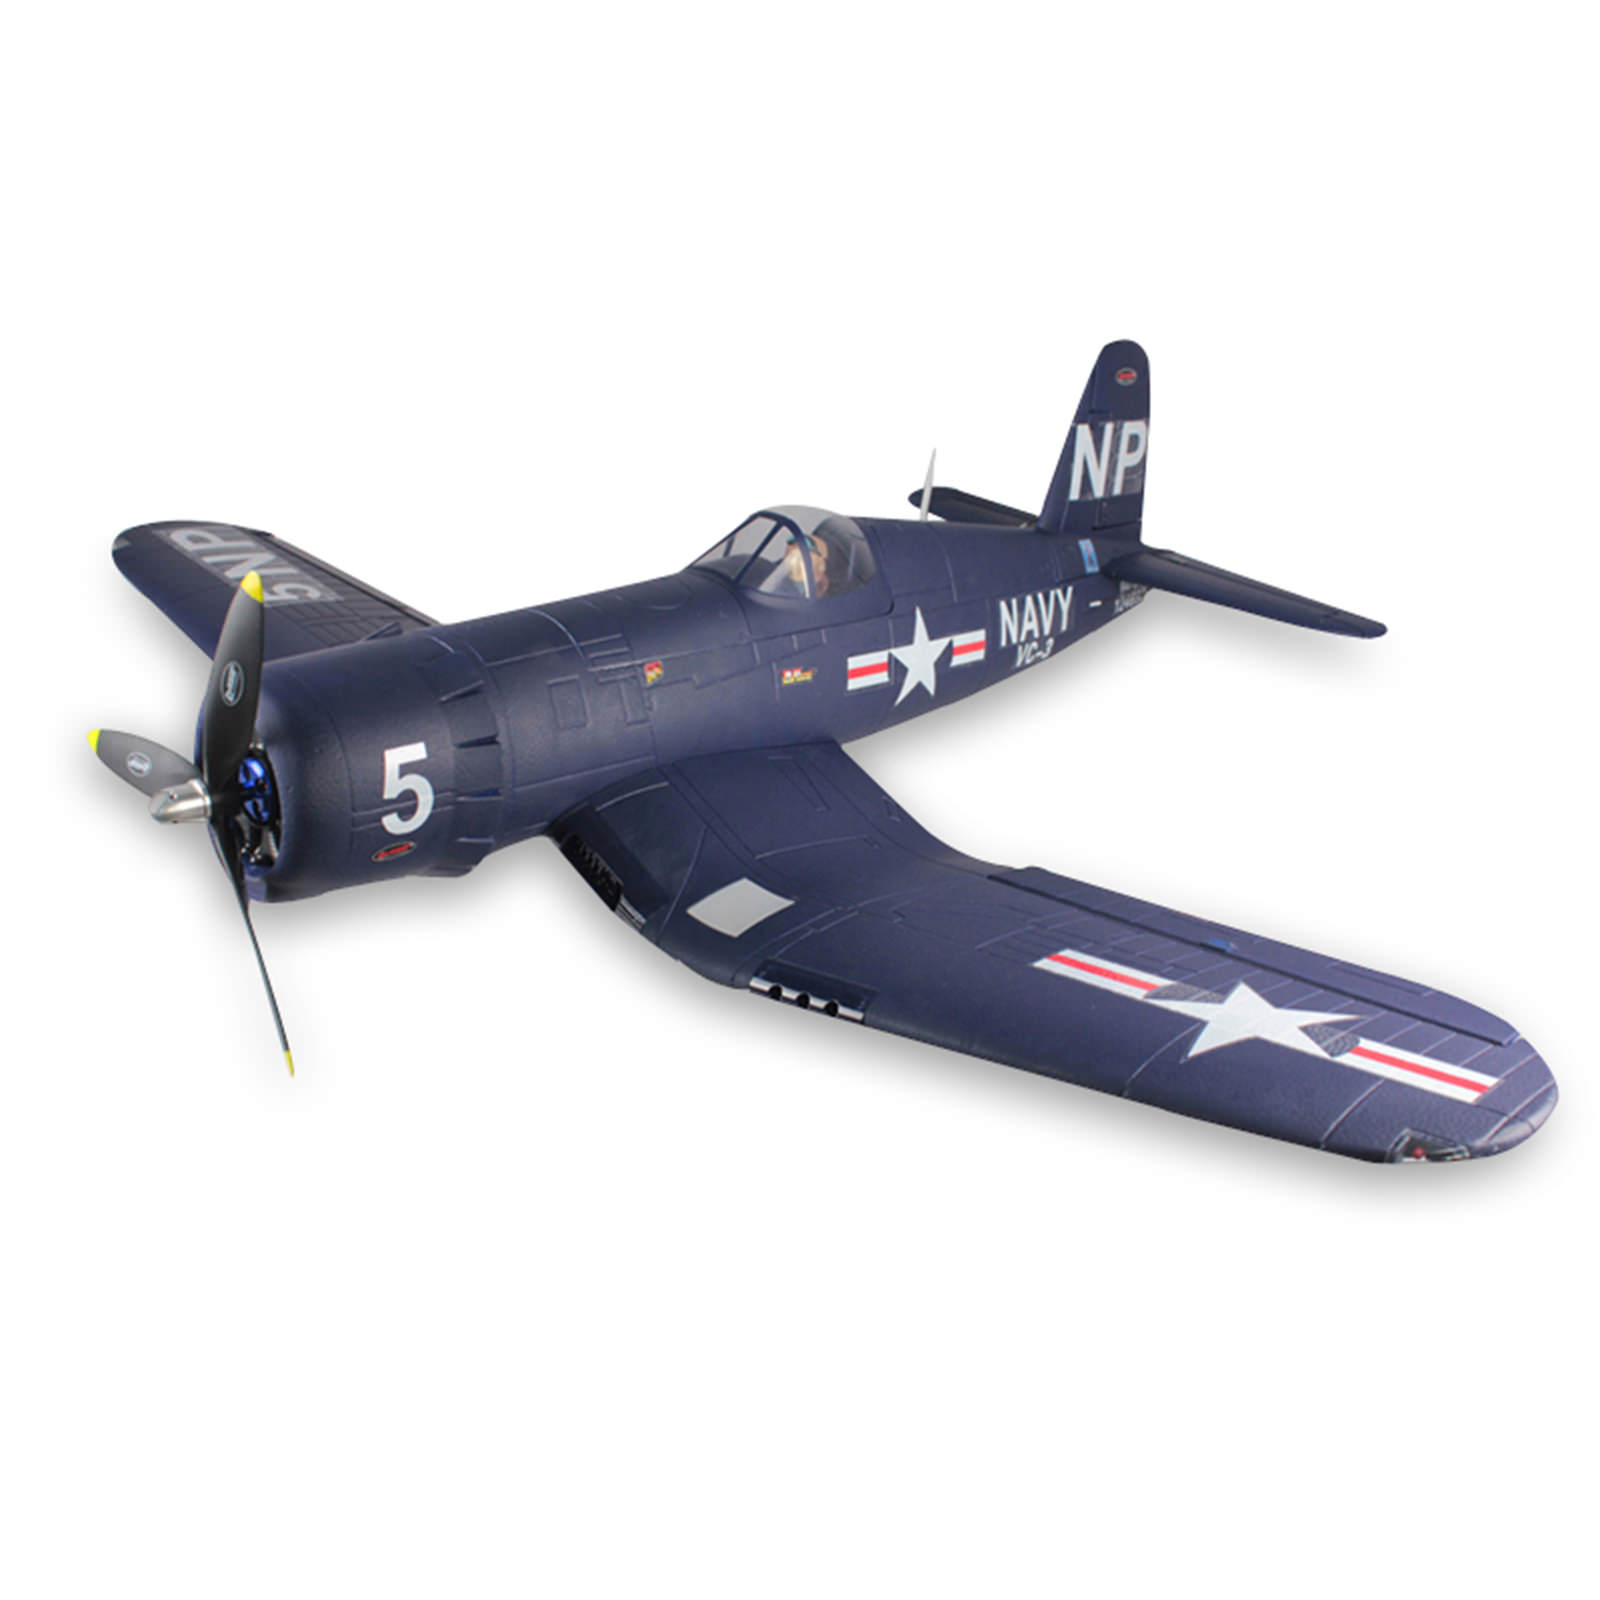 Dynam 8953 F4u Corsair Rc Plane At Hobby Warehouse